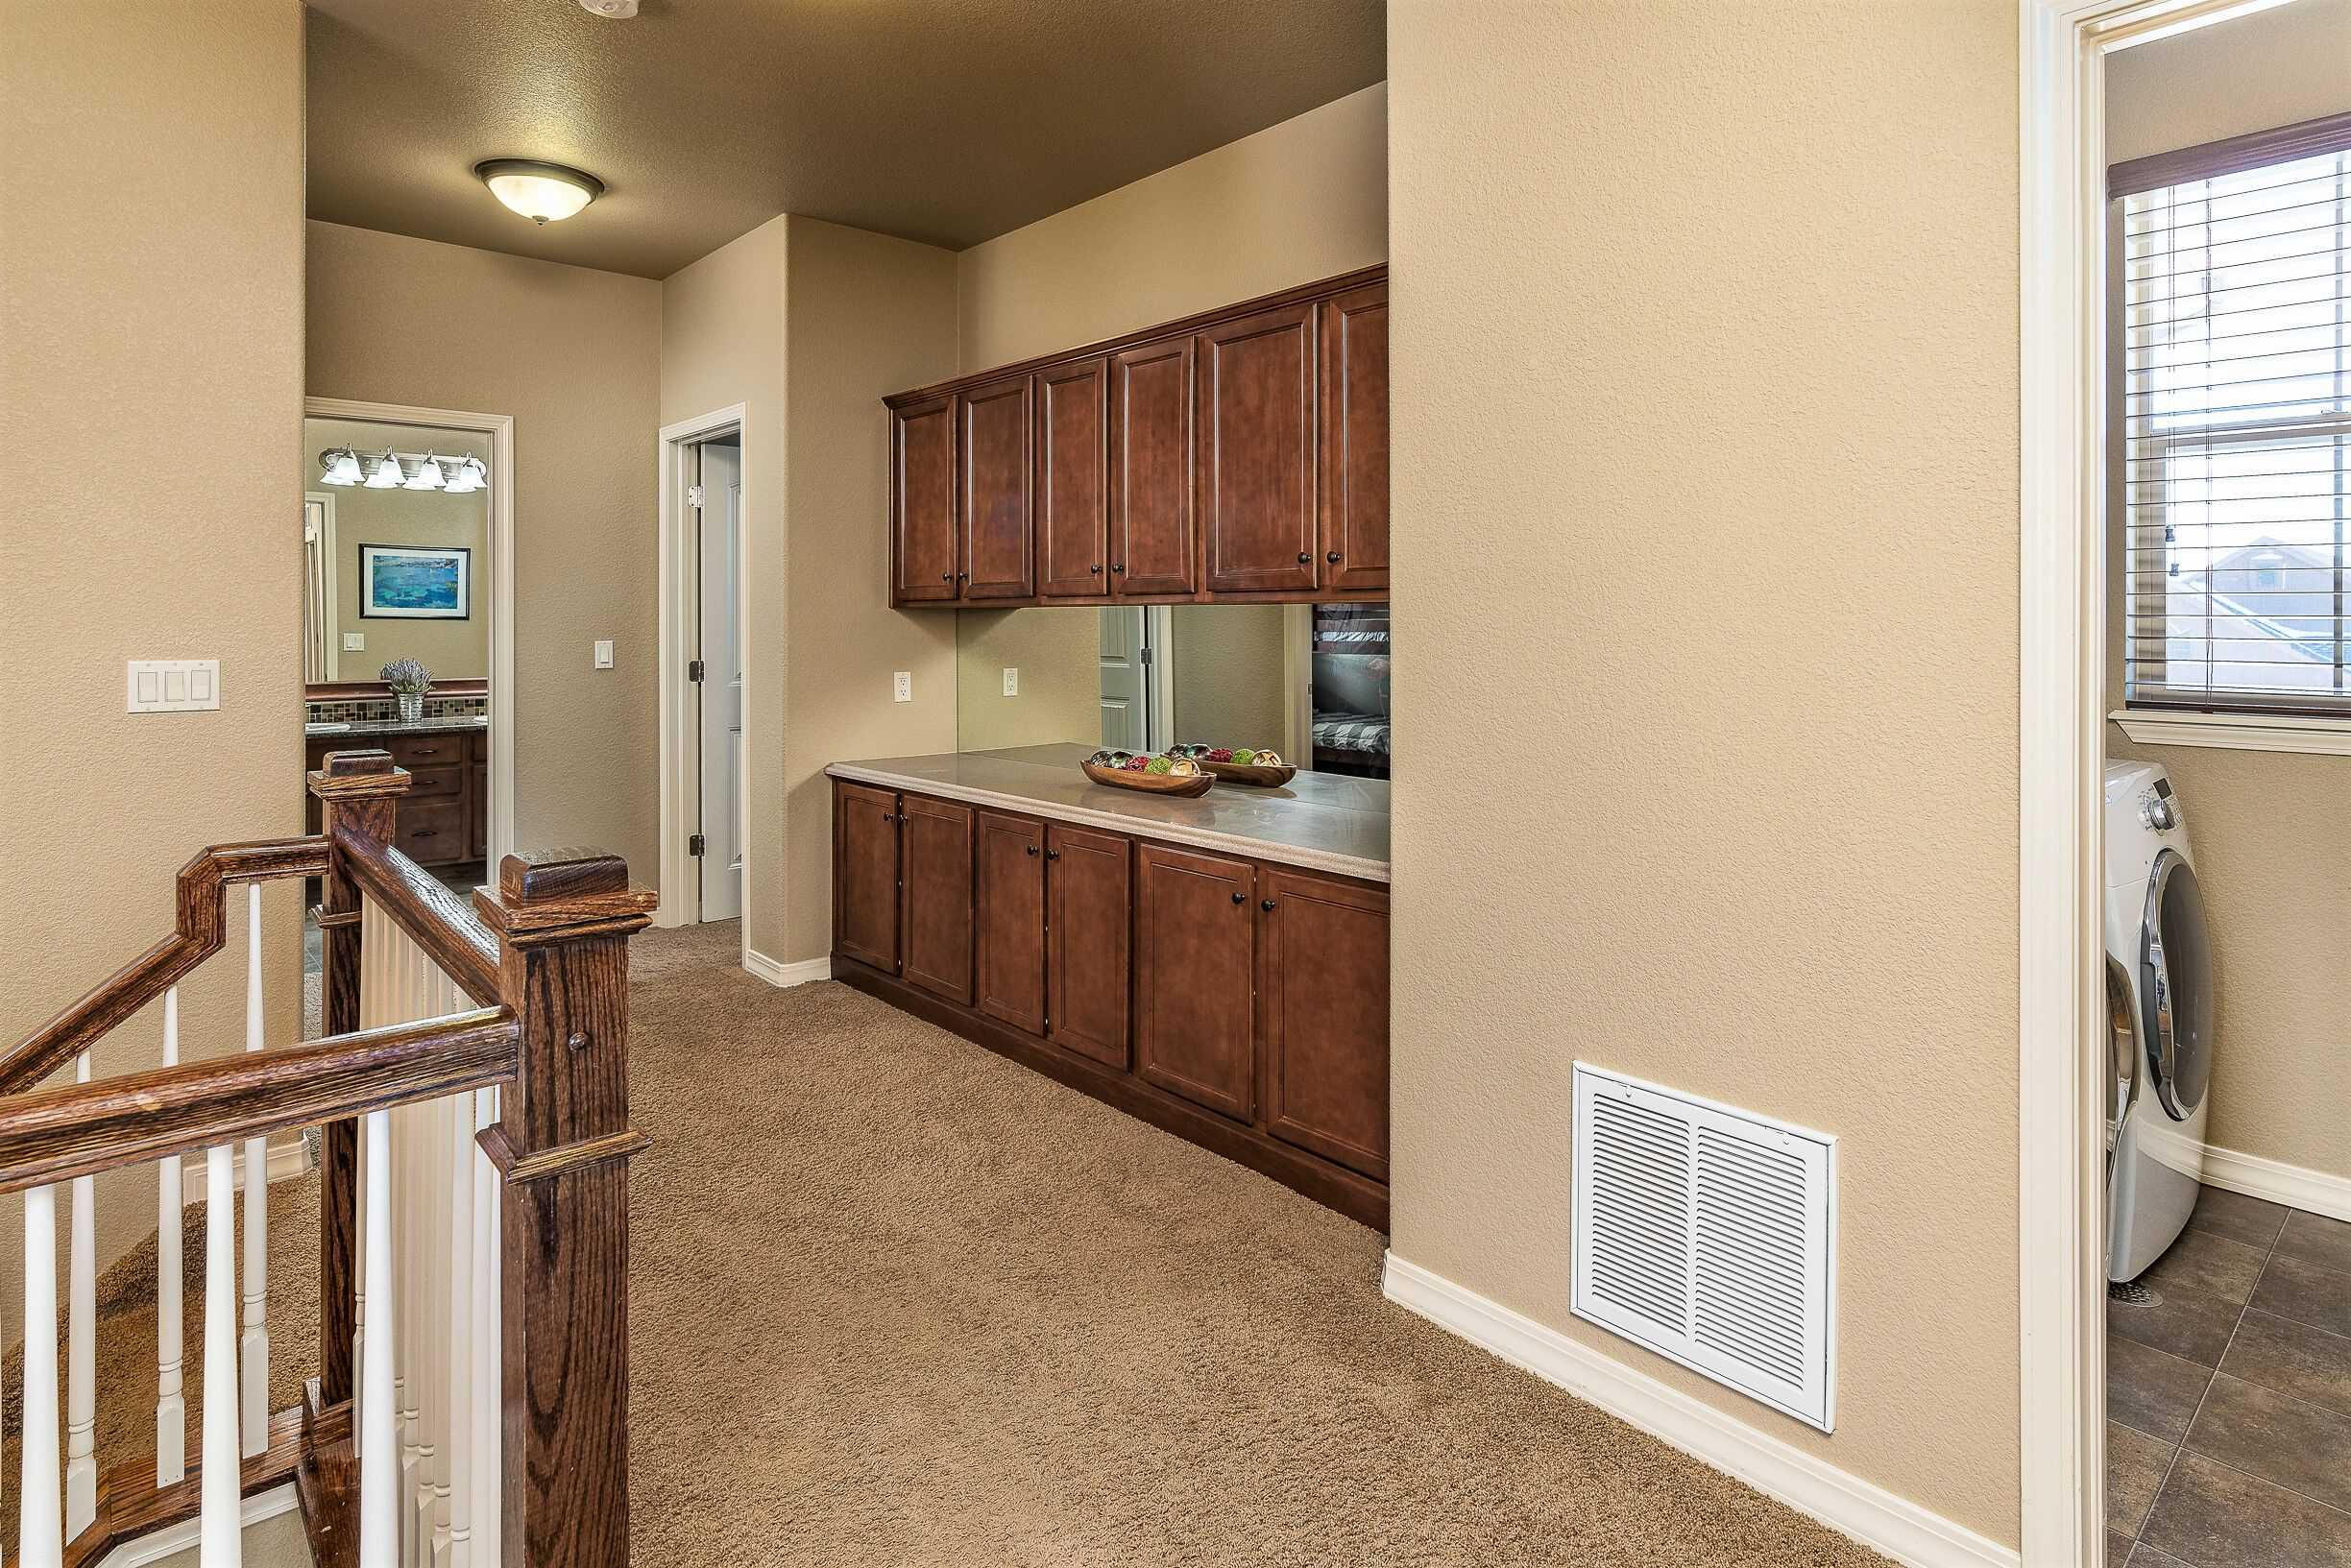 Upper Hall Cabinets and Door into Laundry